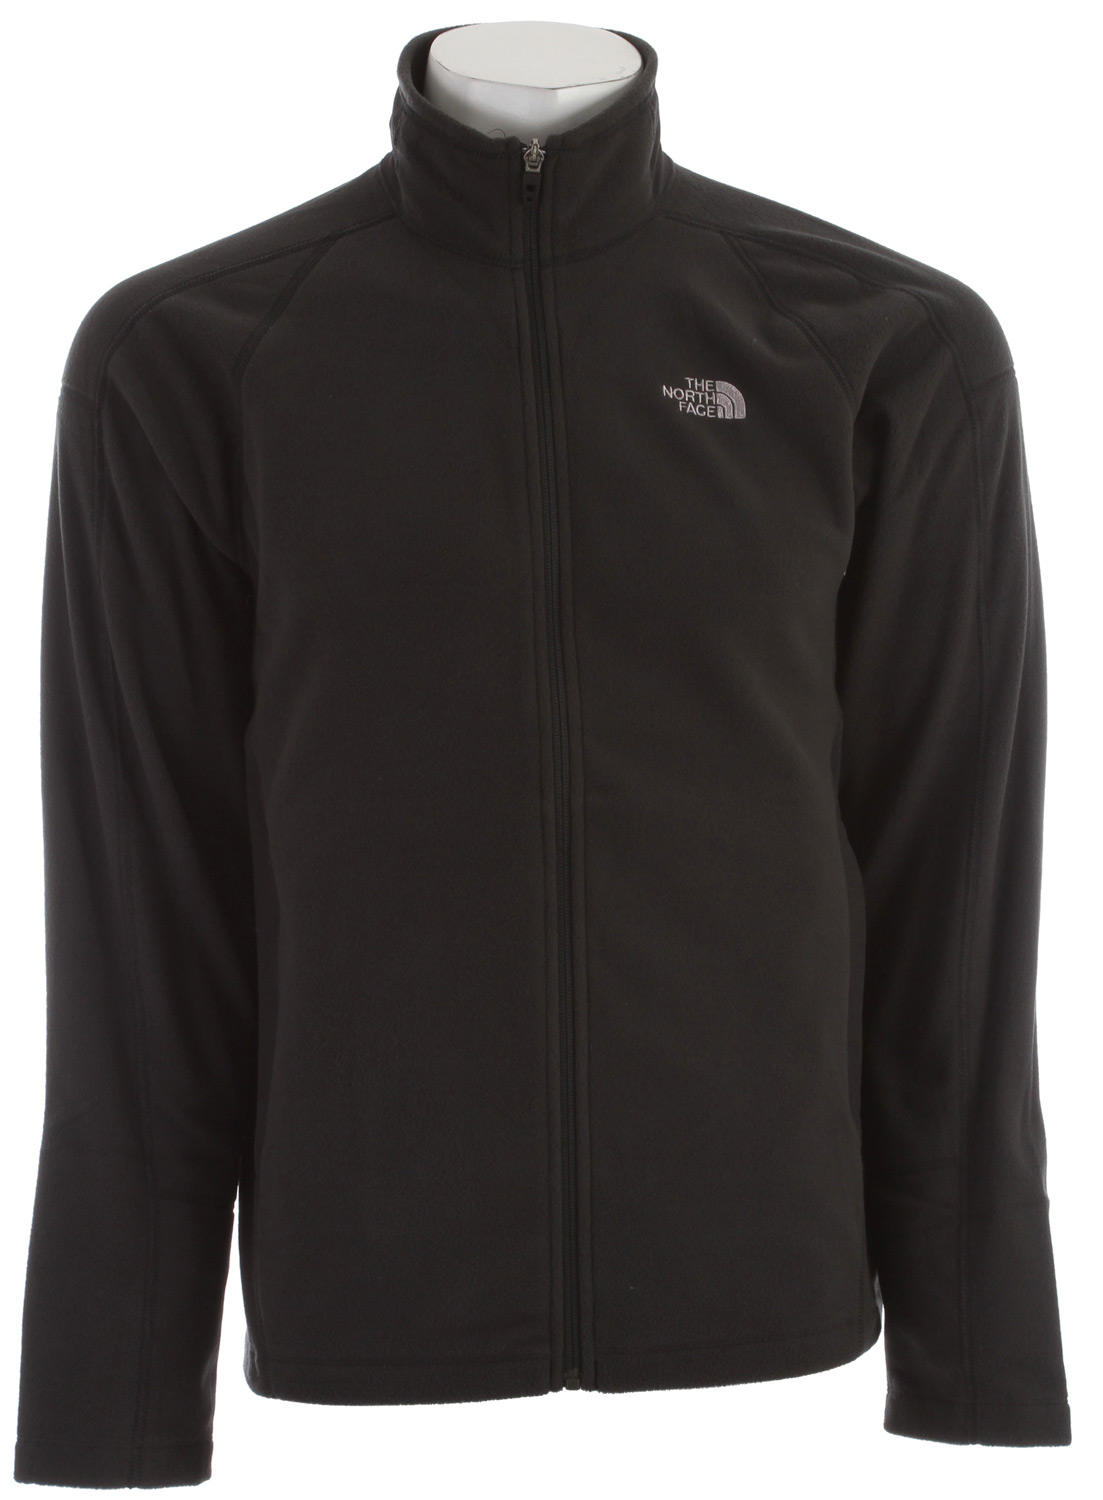 "A lightweight, quick-drying fleece with abrasion-resistant paneling that's ideal for active adventures. Features The North Face FlashDry technology, which works to improve dry time. Key Features of The North Face RDT 100 Full Zip Fleece: Our fastest-drying fleece yet with FlashDry fibers Two hand pockets with welt at opening Reverse-coil full zip Hem cinch-cord Abrasion-resistant paneling at hand pockets and back neck Avg weight: 284 g (10.02 oz) Center back: 28"" Fabric: 70D 155 g/m² (5.46 oz/yd²) 100% polyester fleece with FlashDry - $51.95"